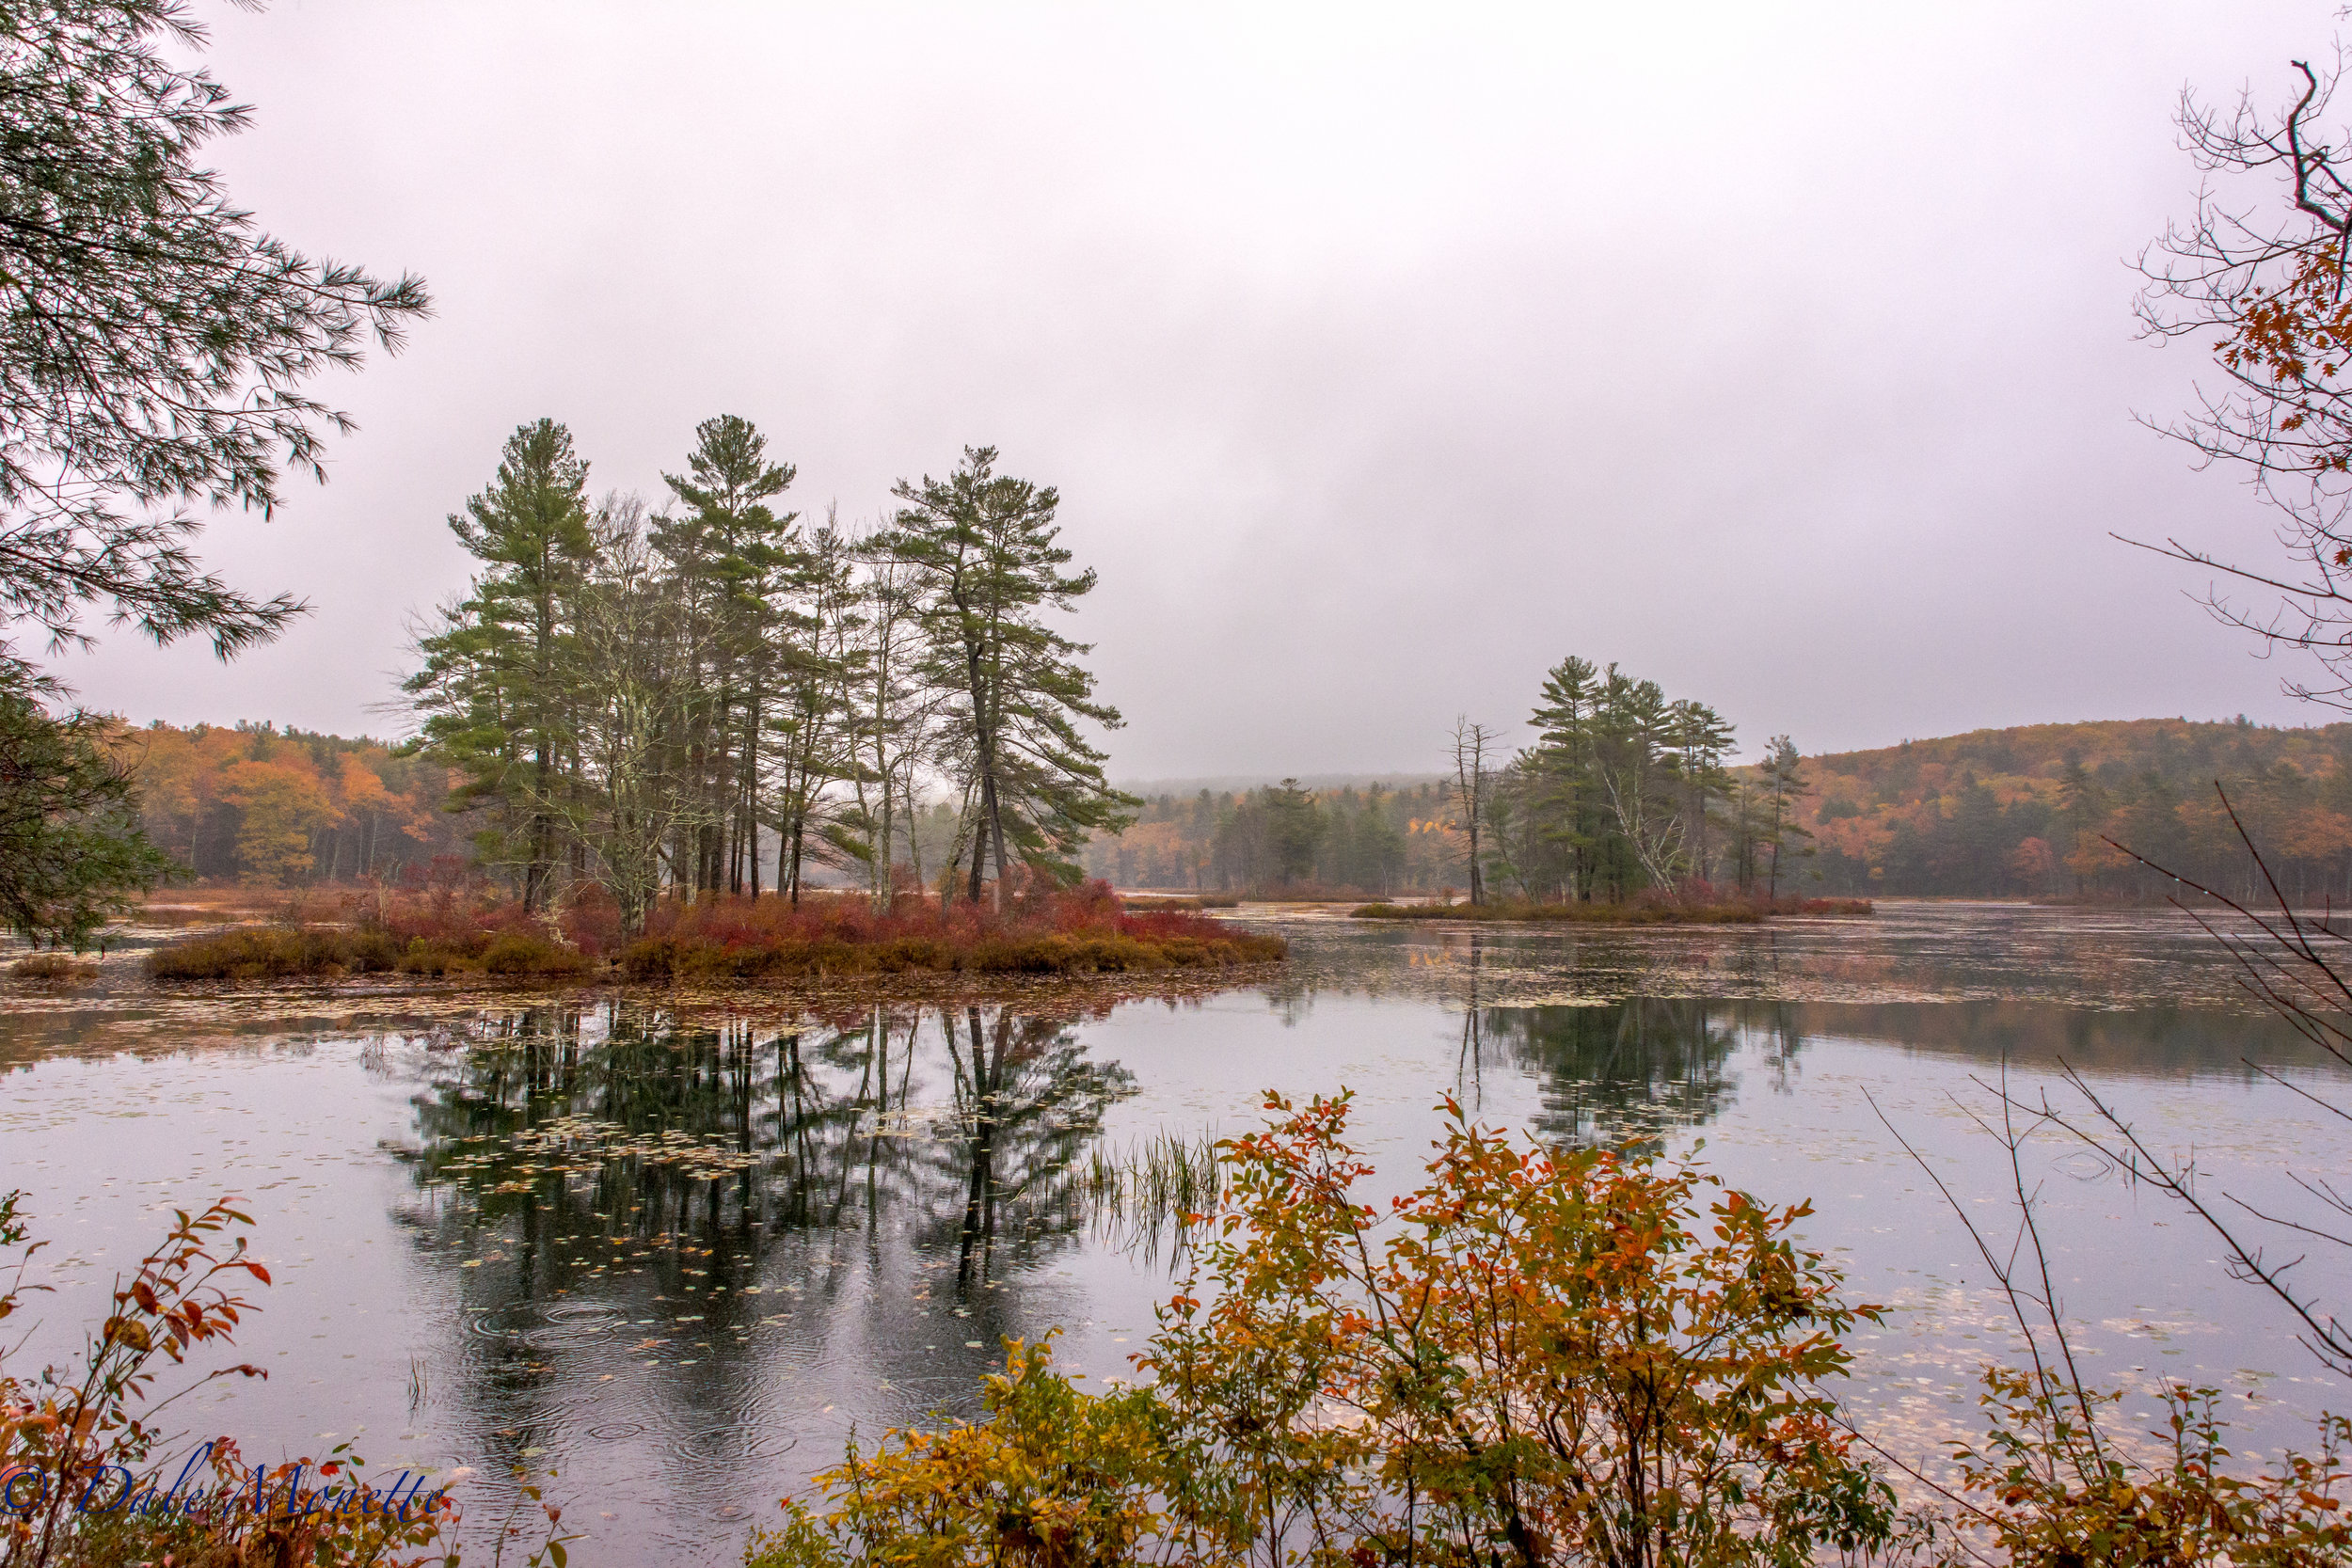 There was a light mist to everything this morning. Sometimes I find this better for scenics than direct sunlight. I love the softness that foggy, misty days can bring to photographs. Harvard Pond, Petersham, MA. 10/22/16